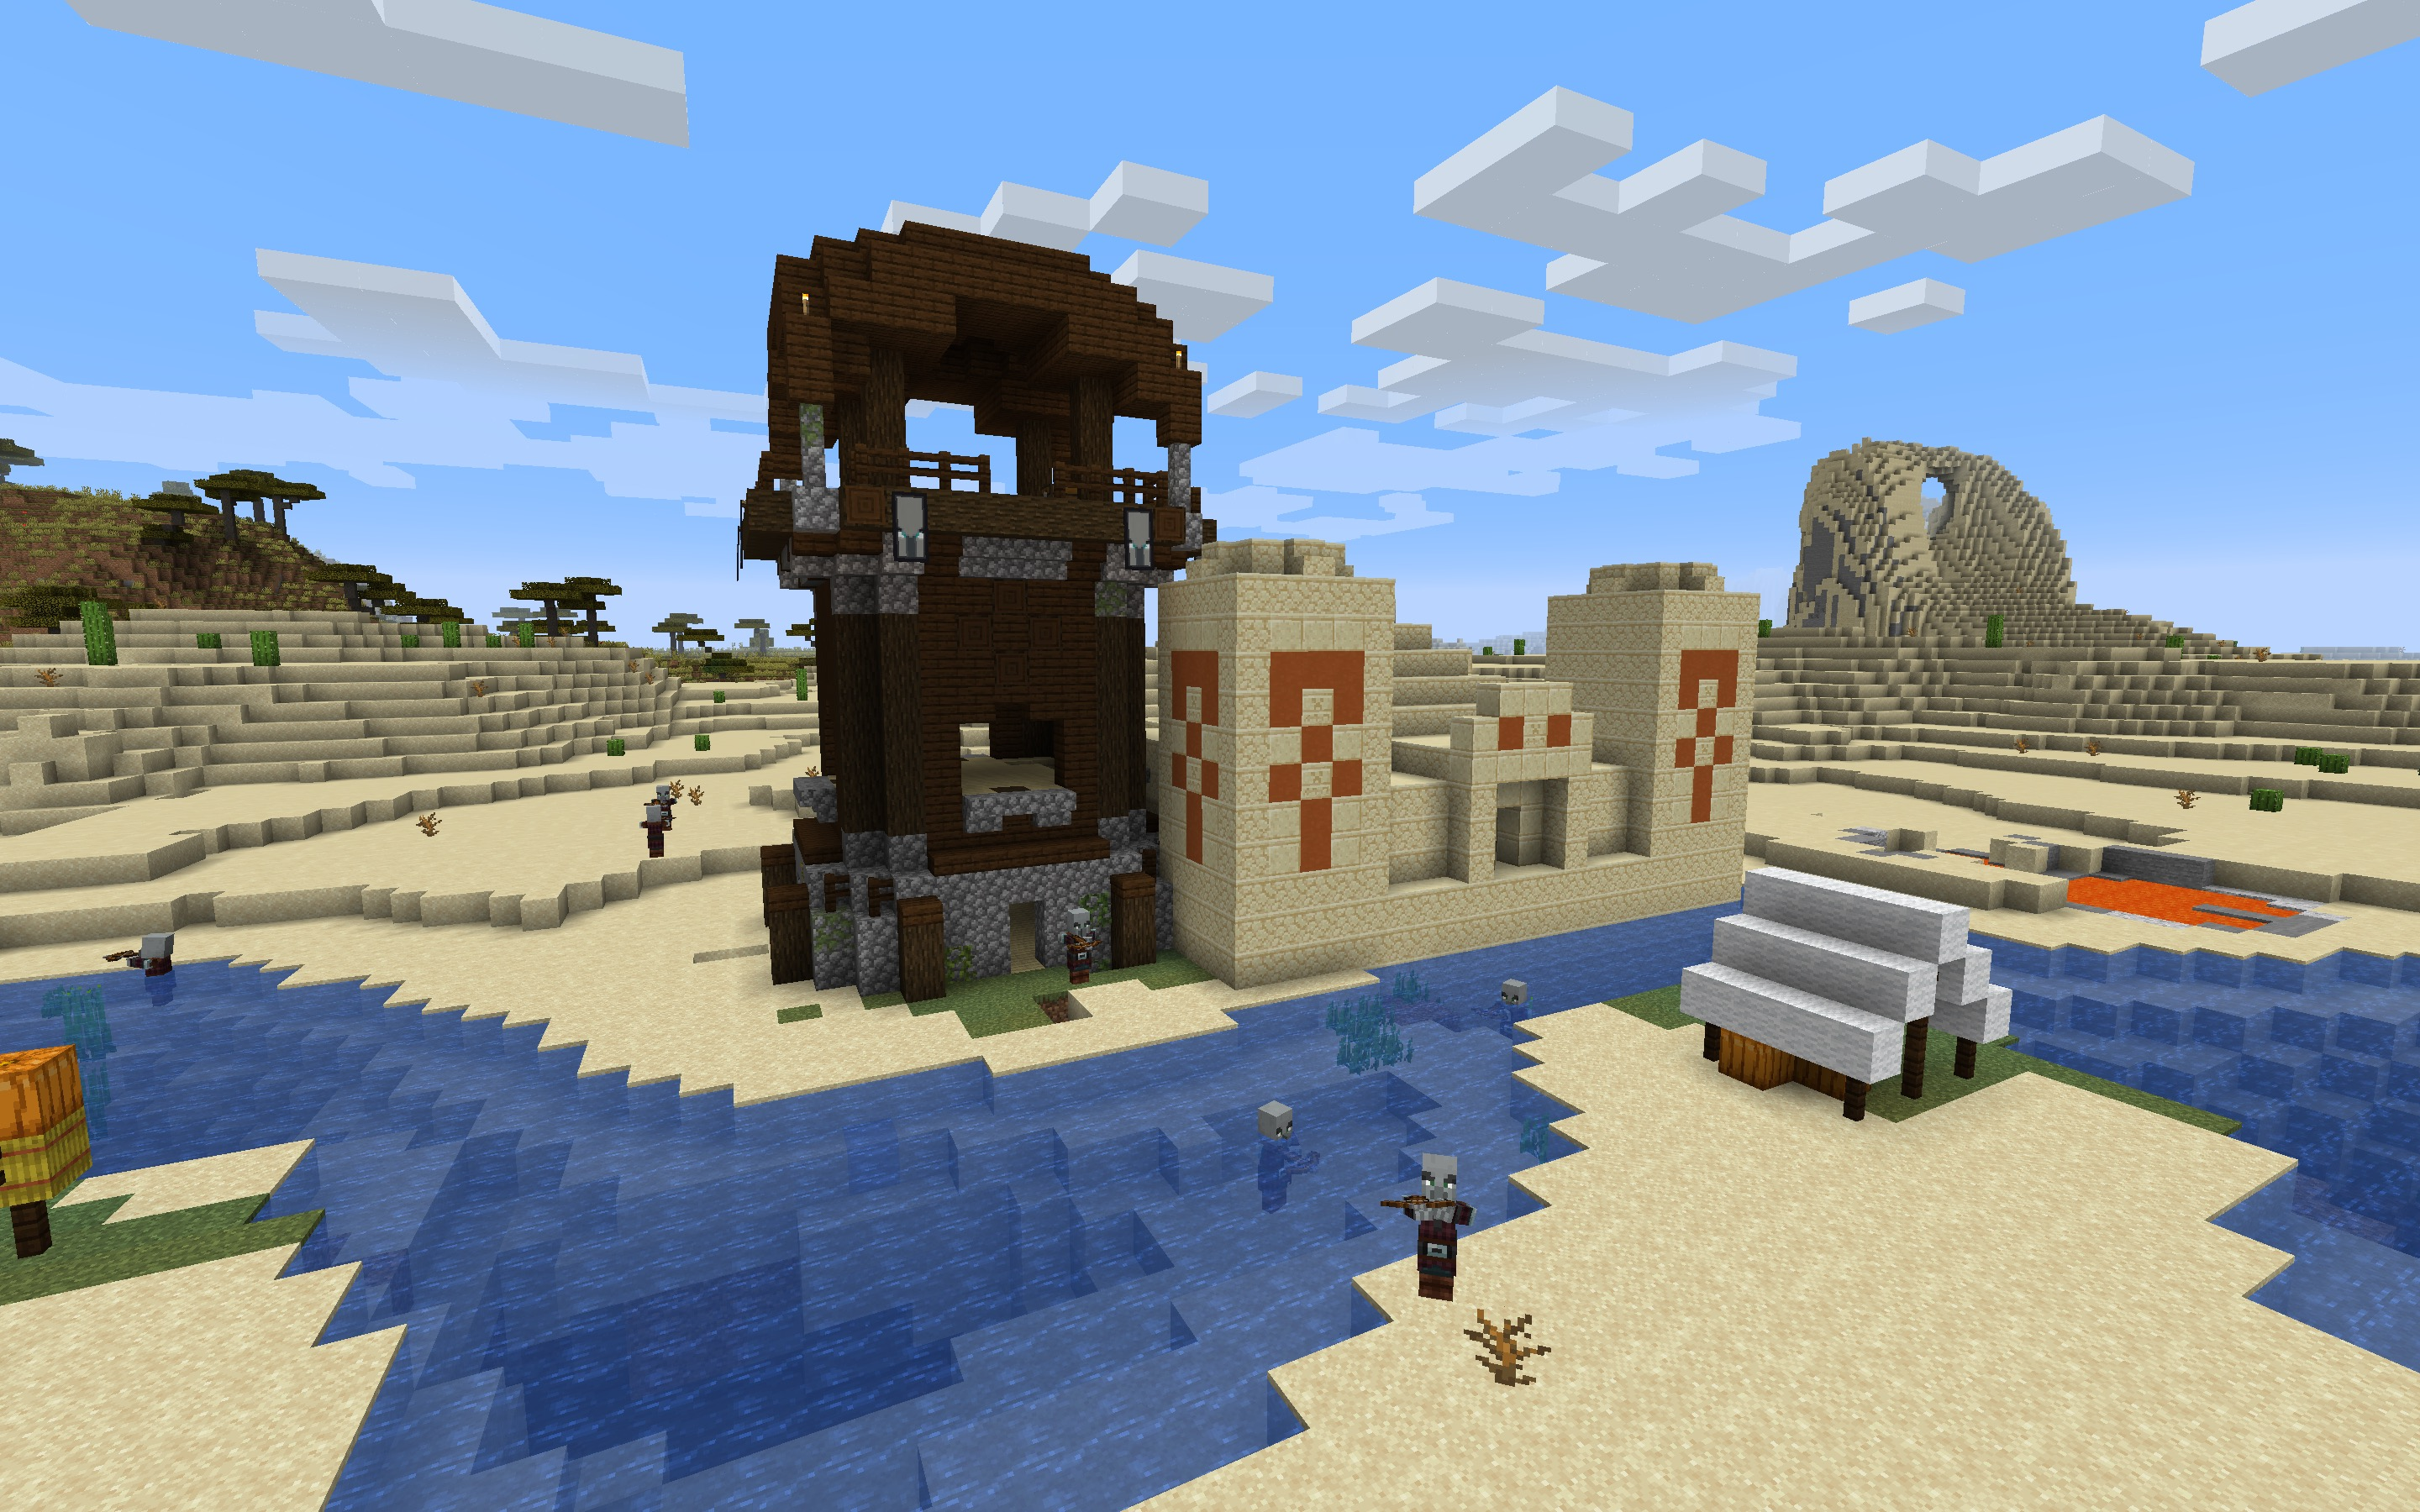 Pillager Outpost Minecraft Seed - Java